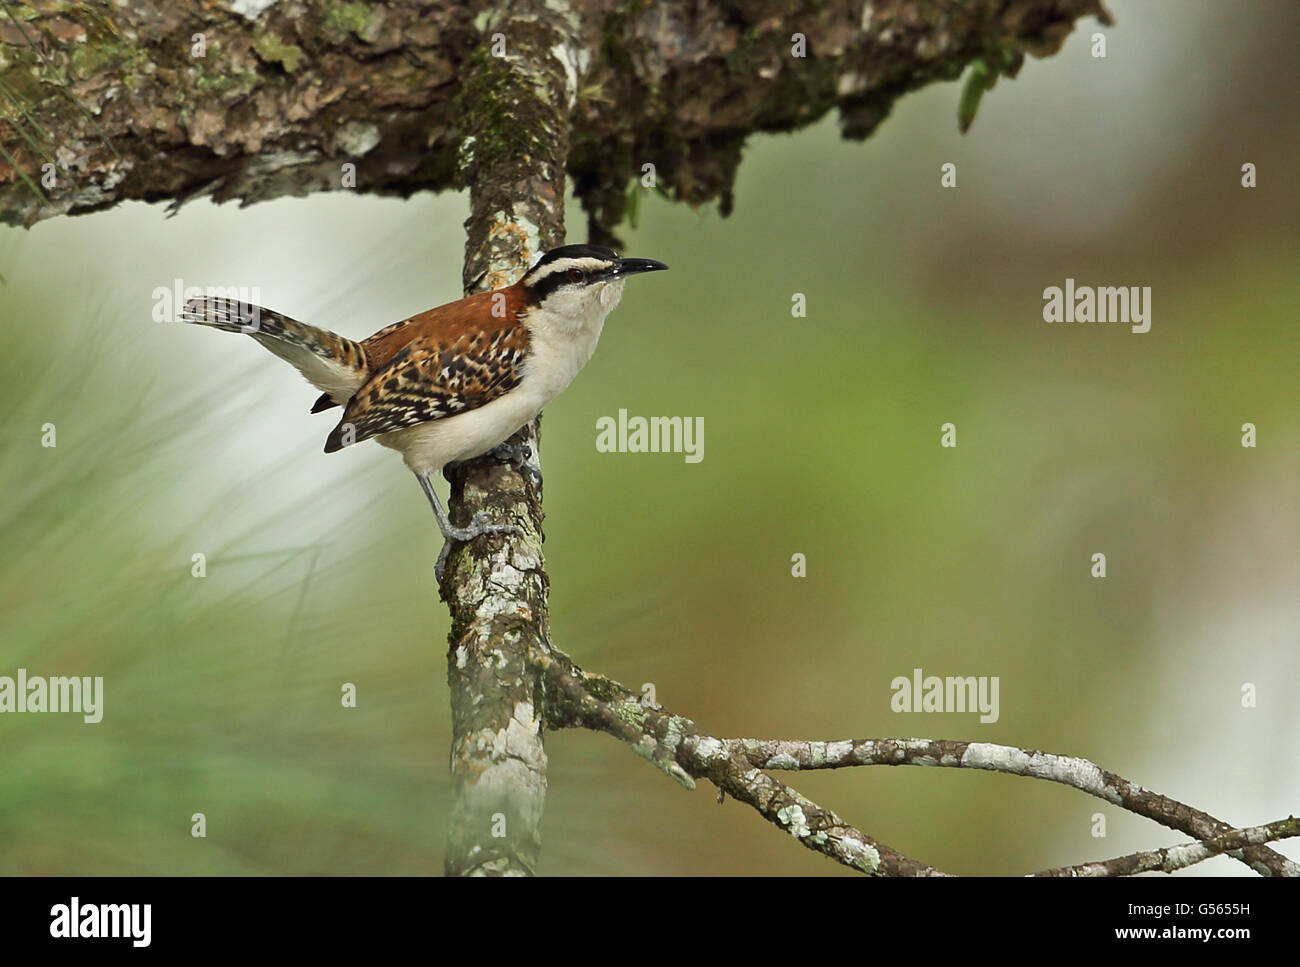 Rufous-naped Wren (Campylorhynchus rufinucha castaneus) adult, perched on branch, Lake Yojoa, Honduras, February Stock Photo